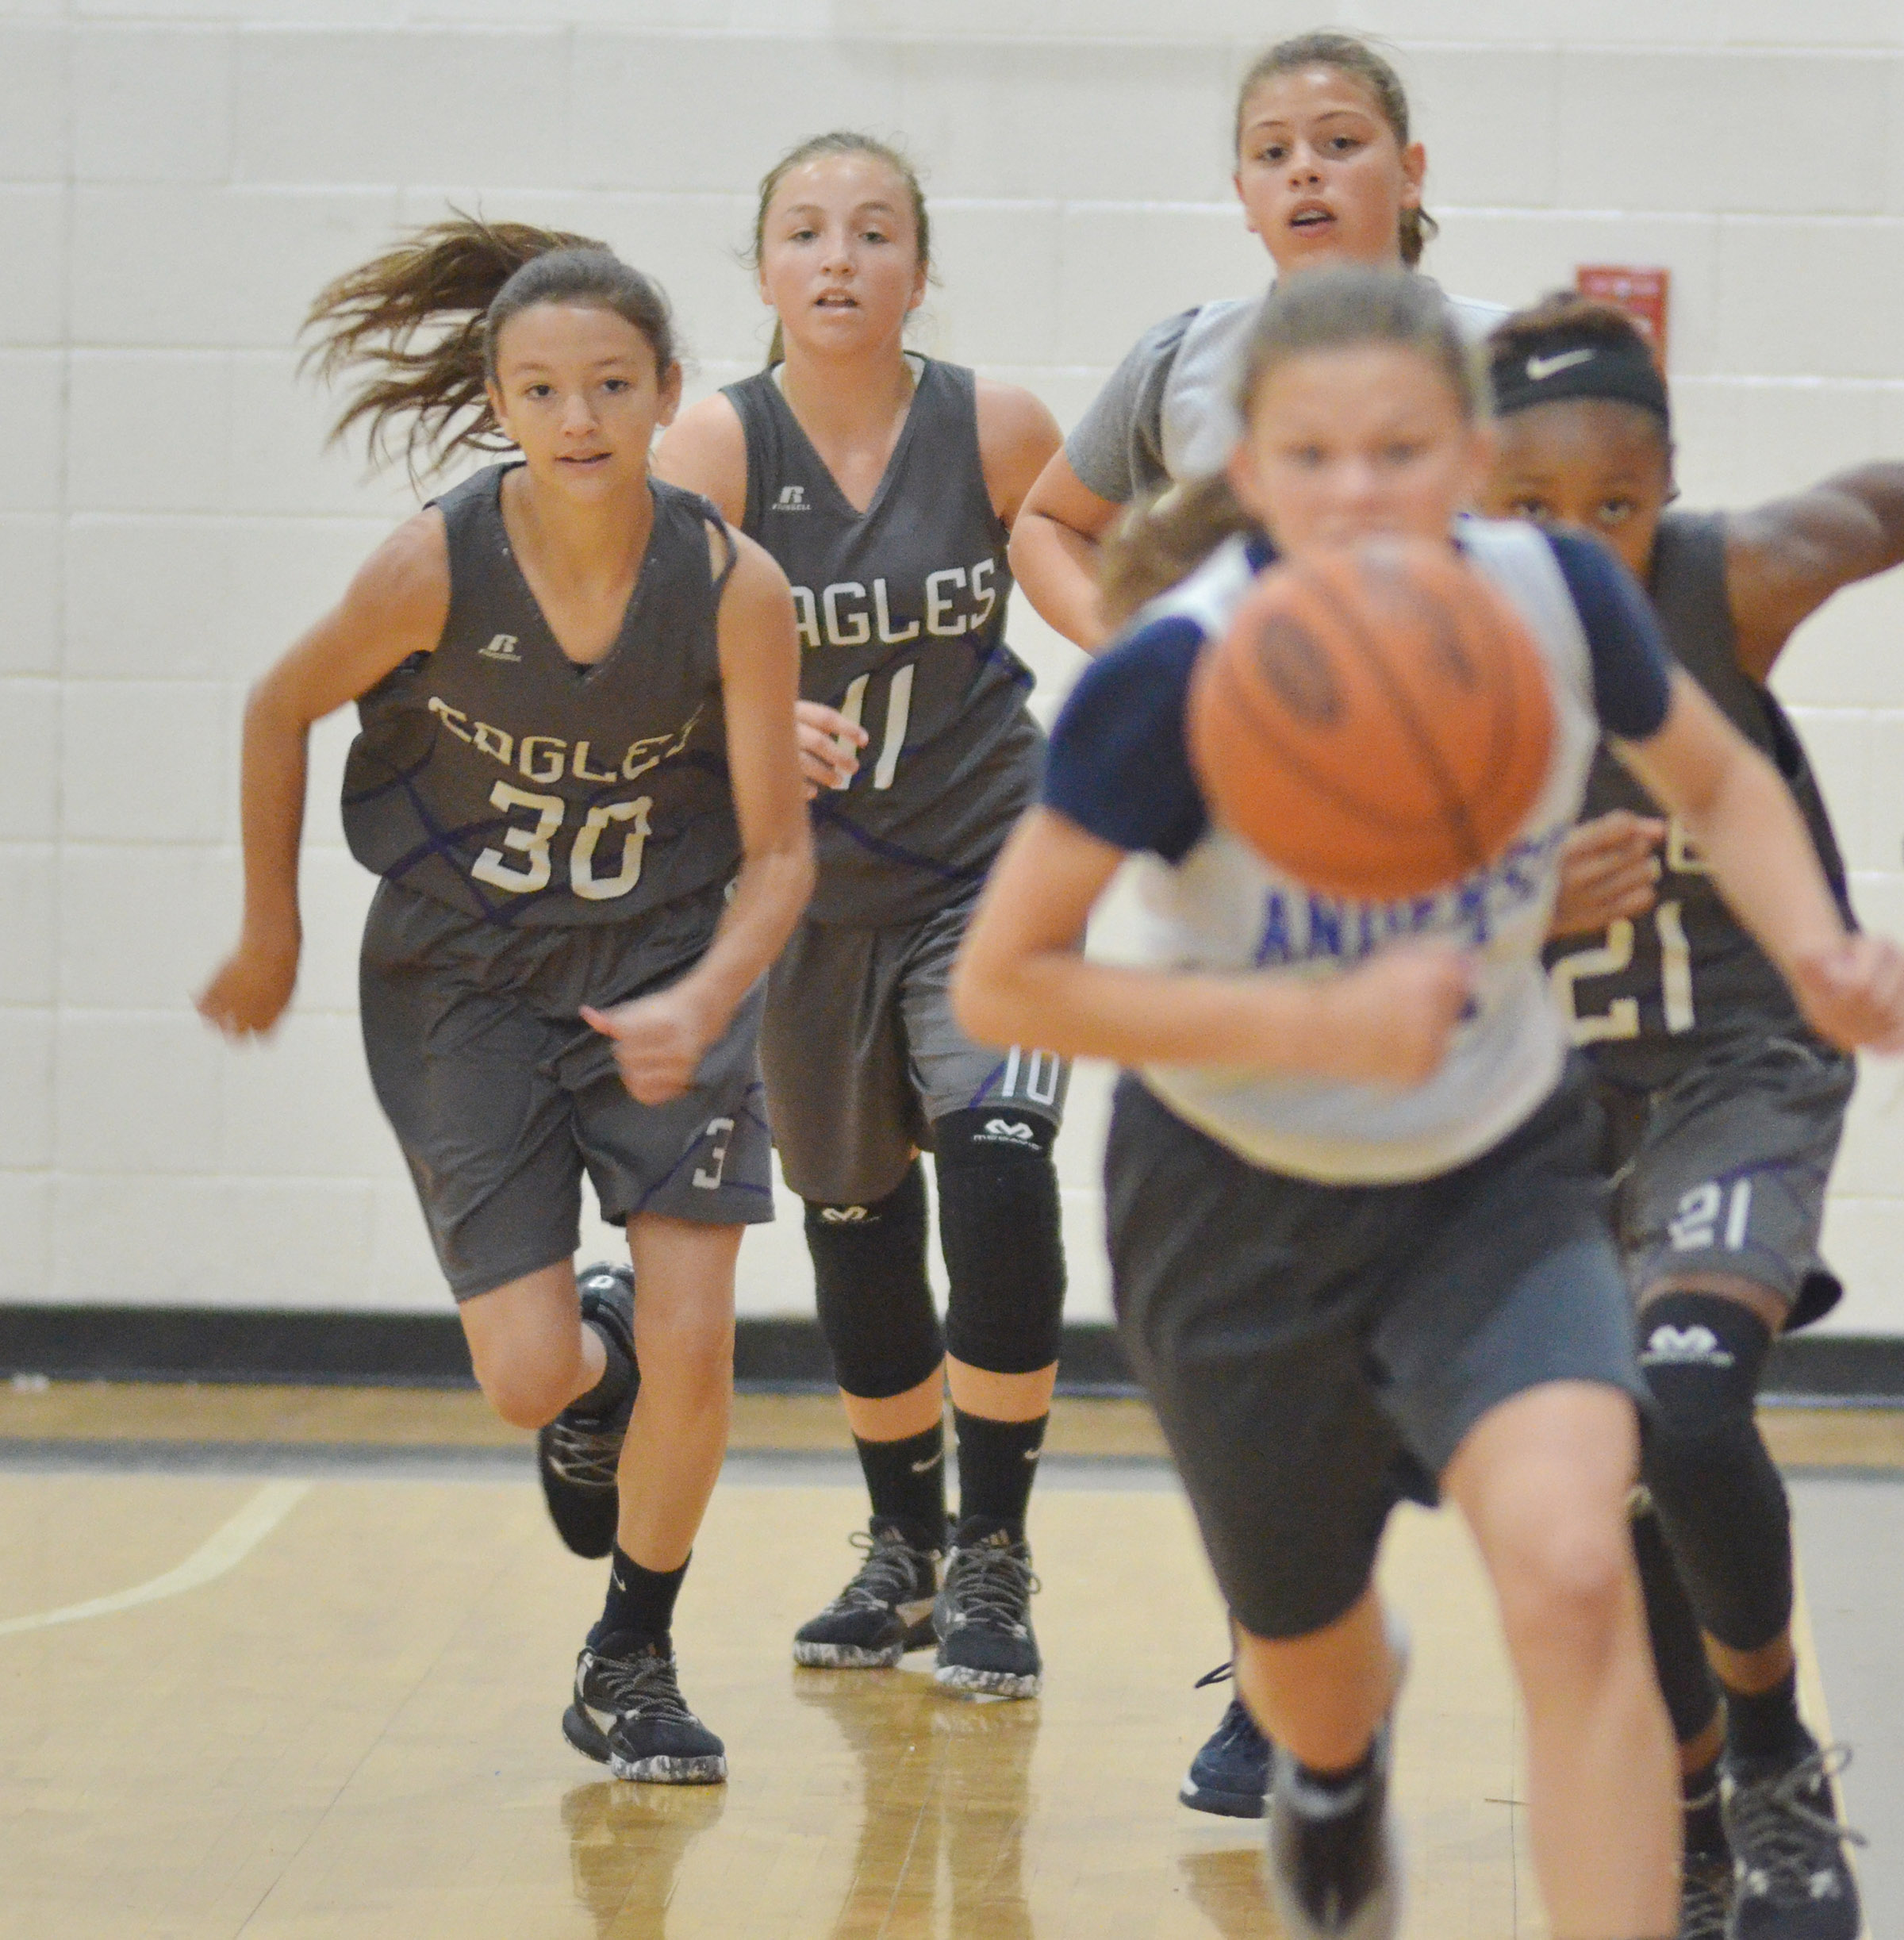 From left, CMS seventh-grader Bri Hayes and eighth-graders Lainey Watson and Bri Gowdy run for the ball.